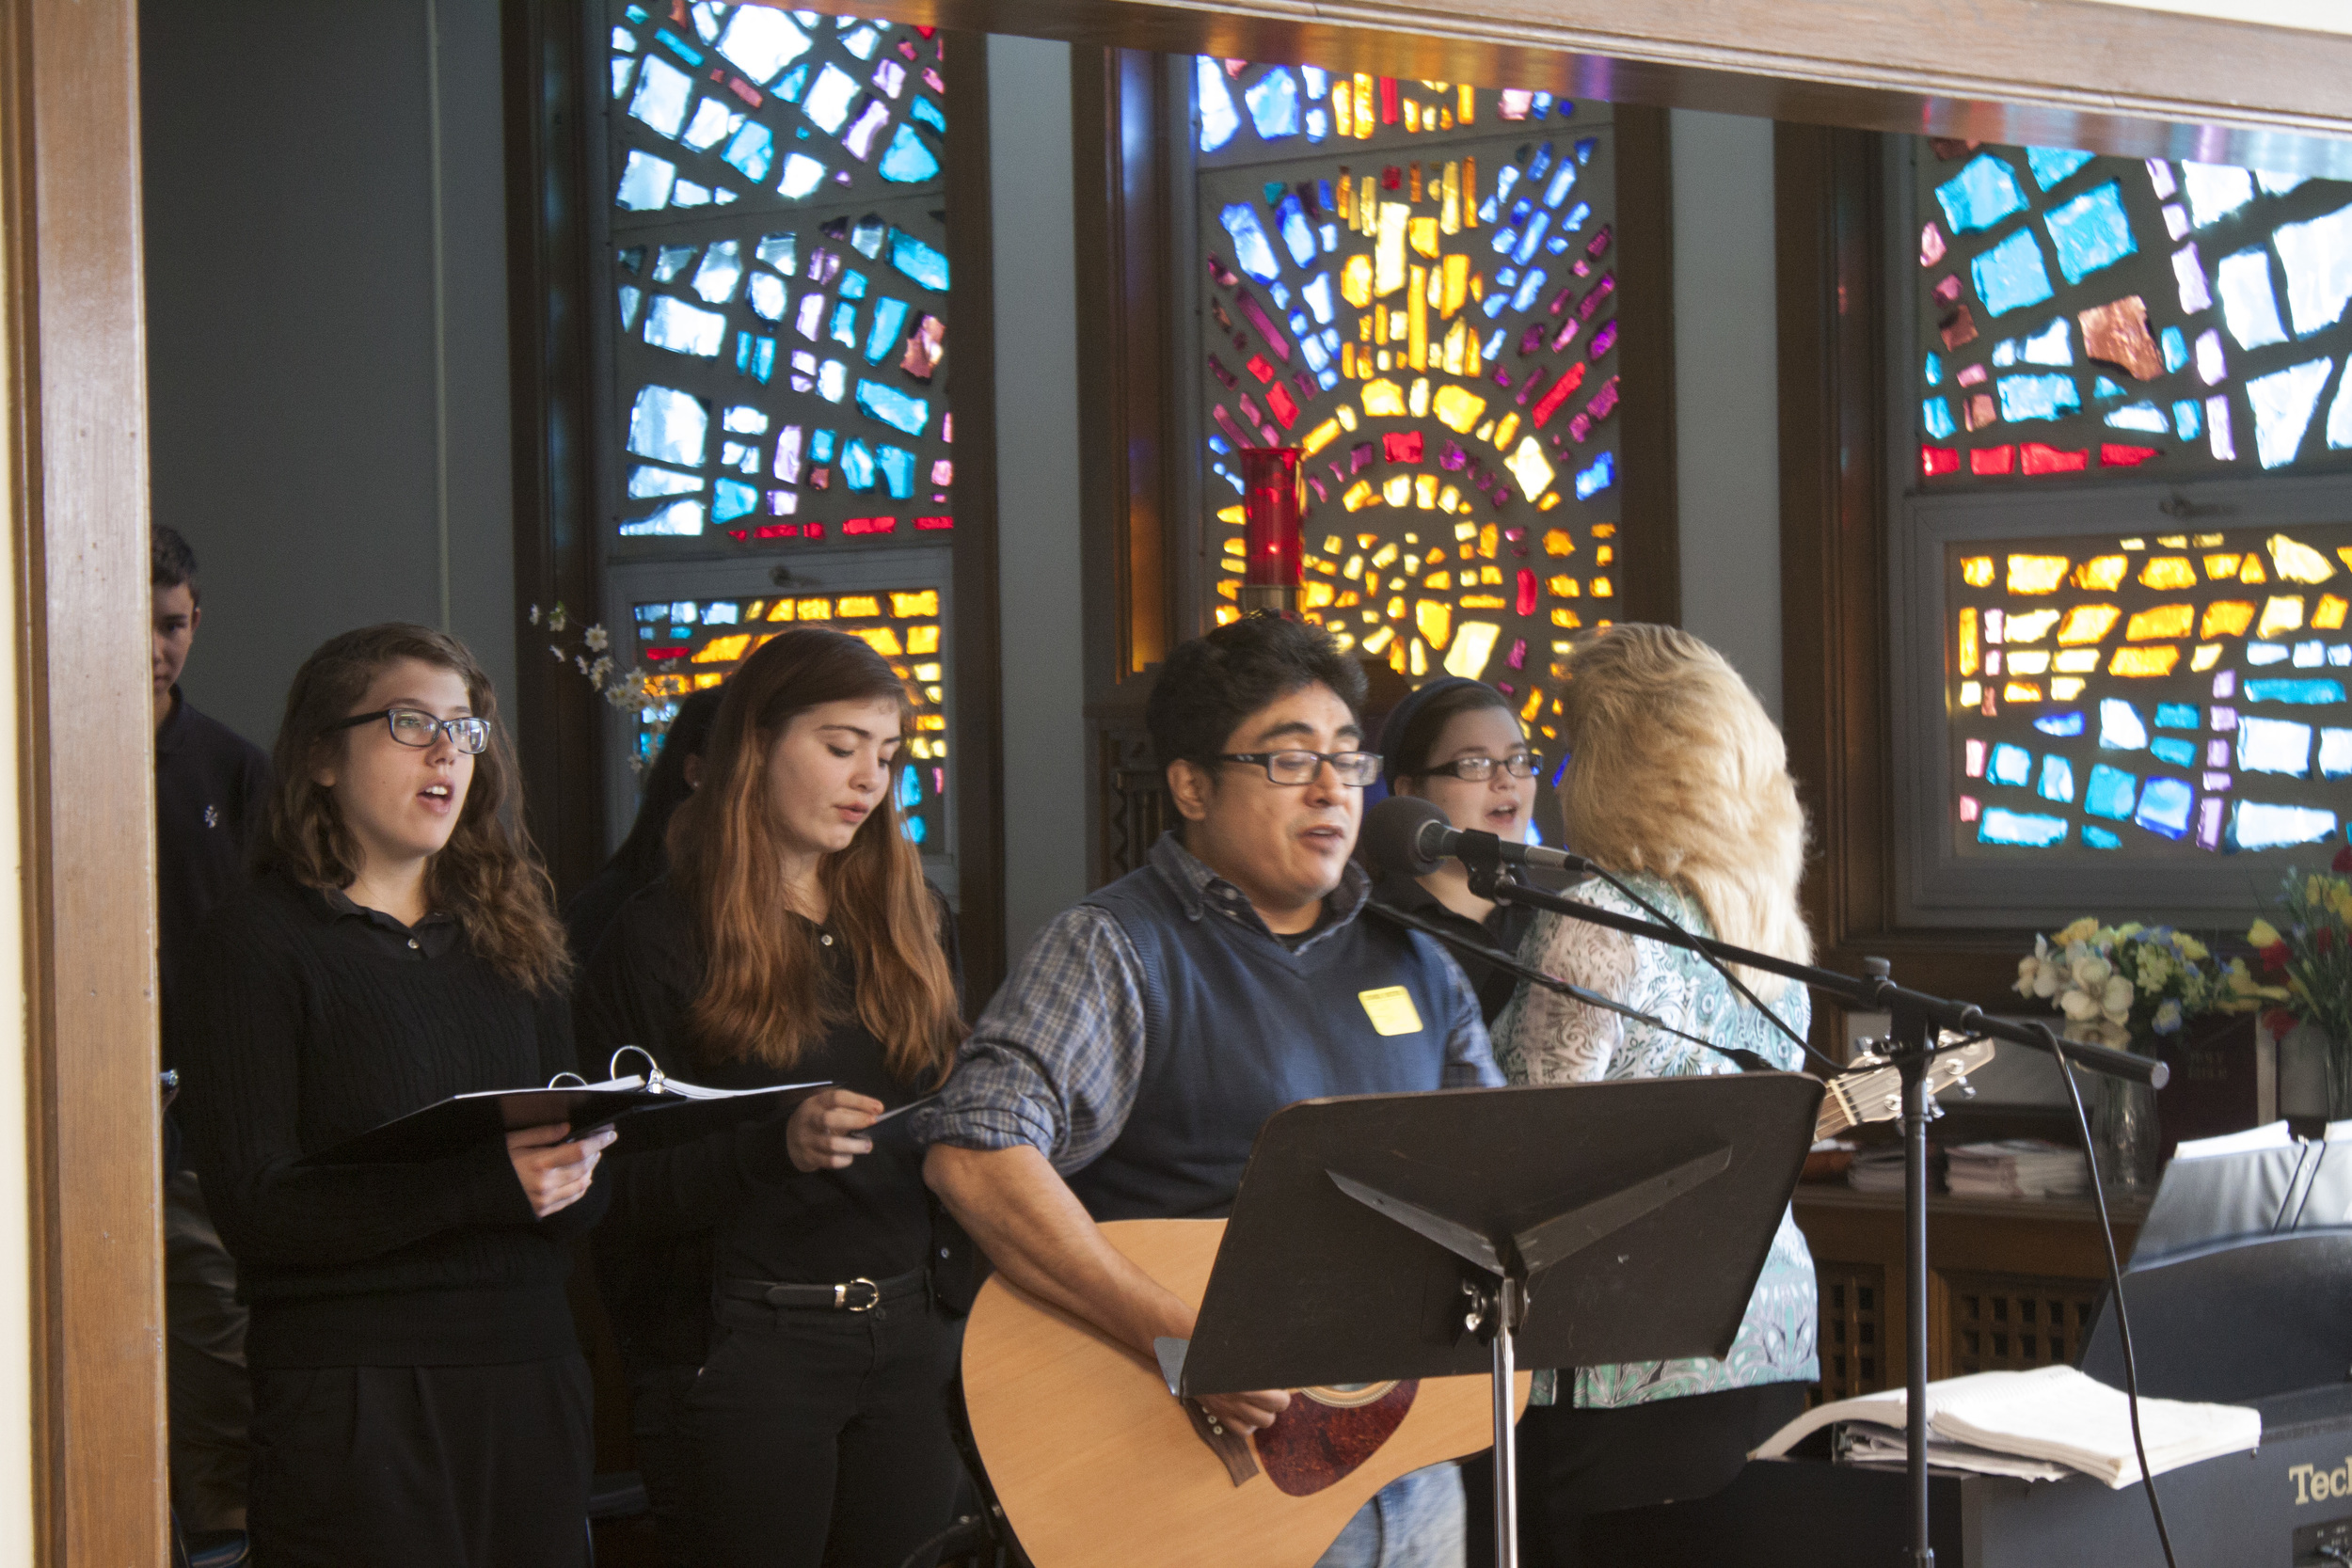 Students playing at a donor mass on October 15, 2015